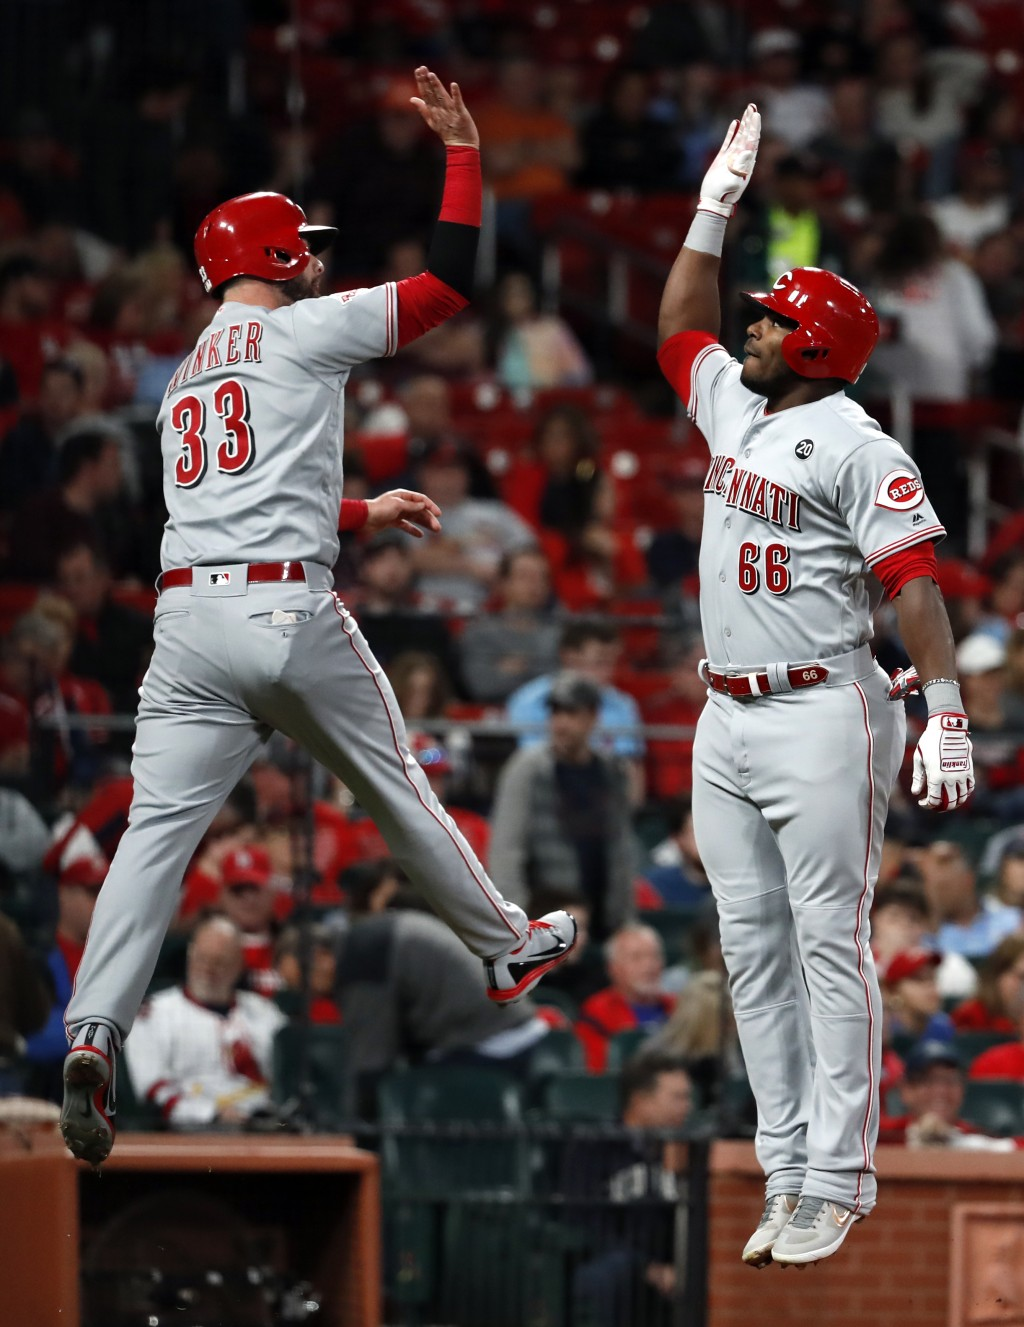 Cincinnati Reds' Yasiel Puig (66) is congratulated by teammate Jesse Winker (33) after hitting a two-run home run during the eighth inning of a baseba...